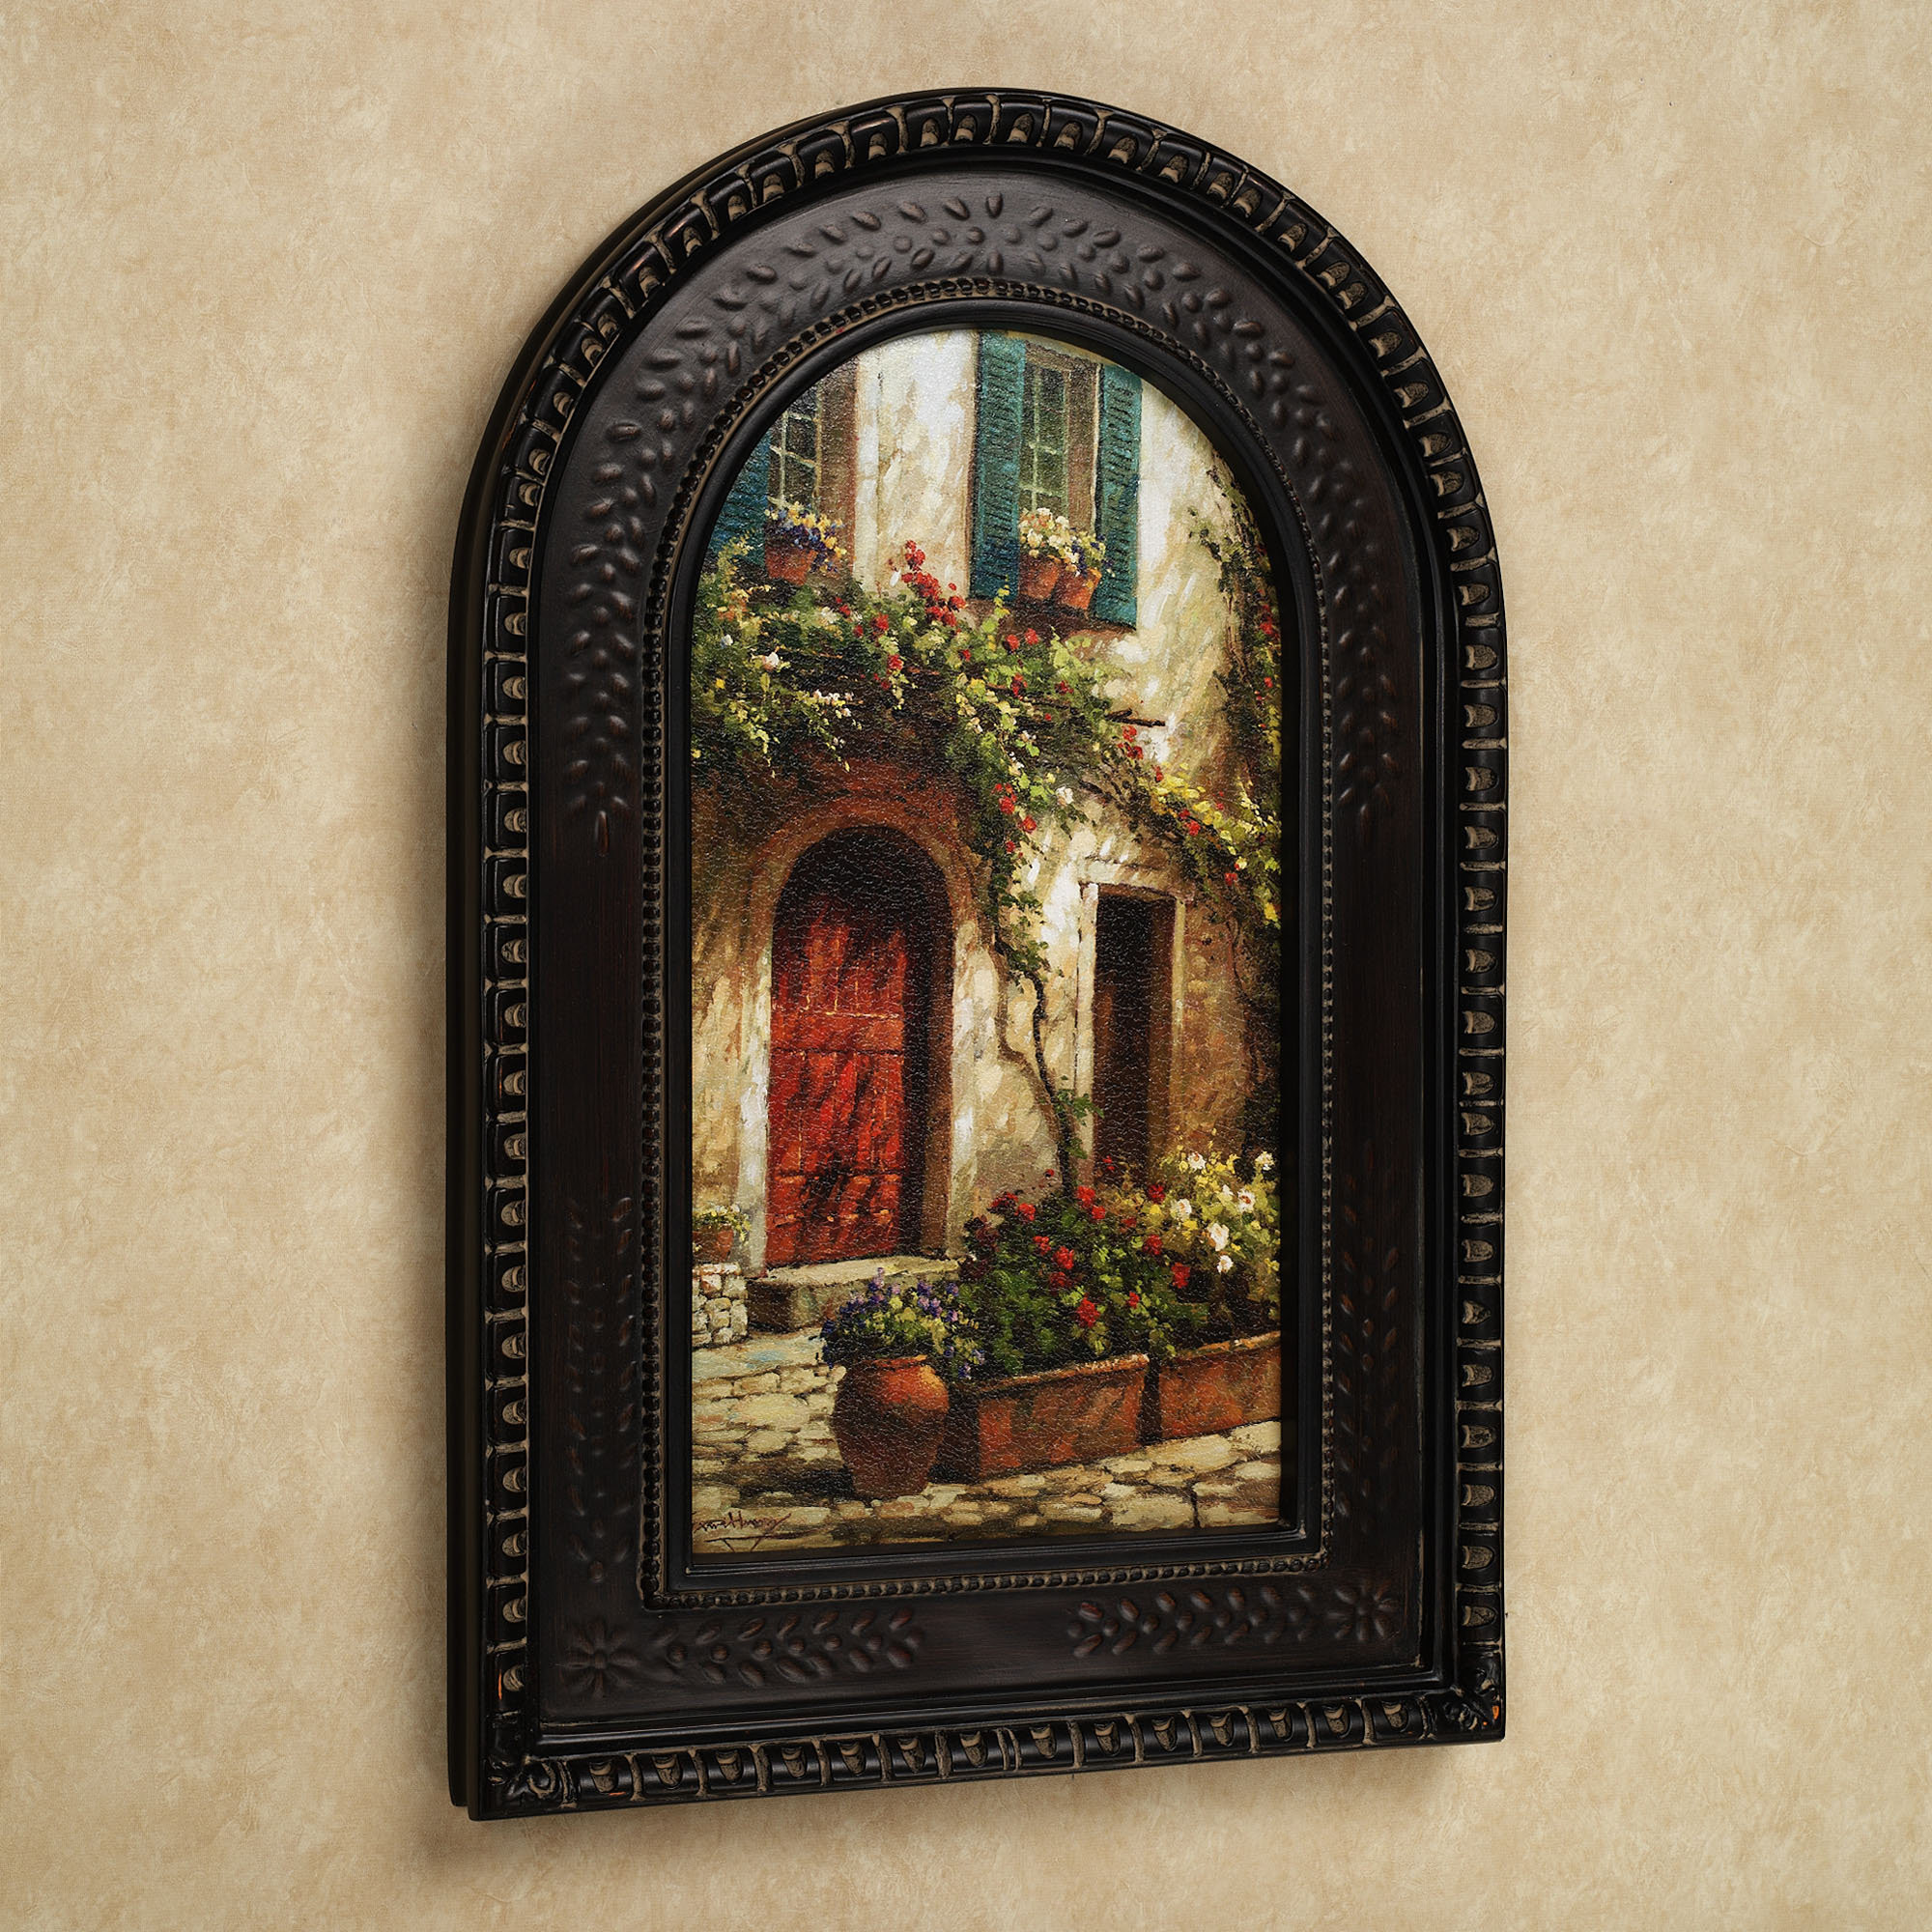 Best ideas about Framed Wall Art . Save or Pin Wall Art Ideas Design Framed Home Italian Wall Art Now.